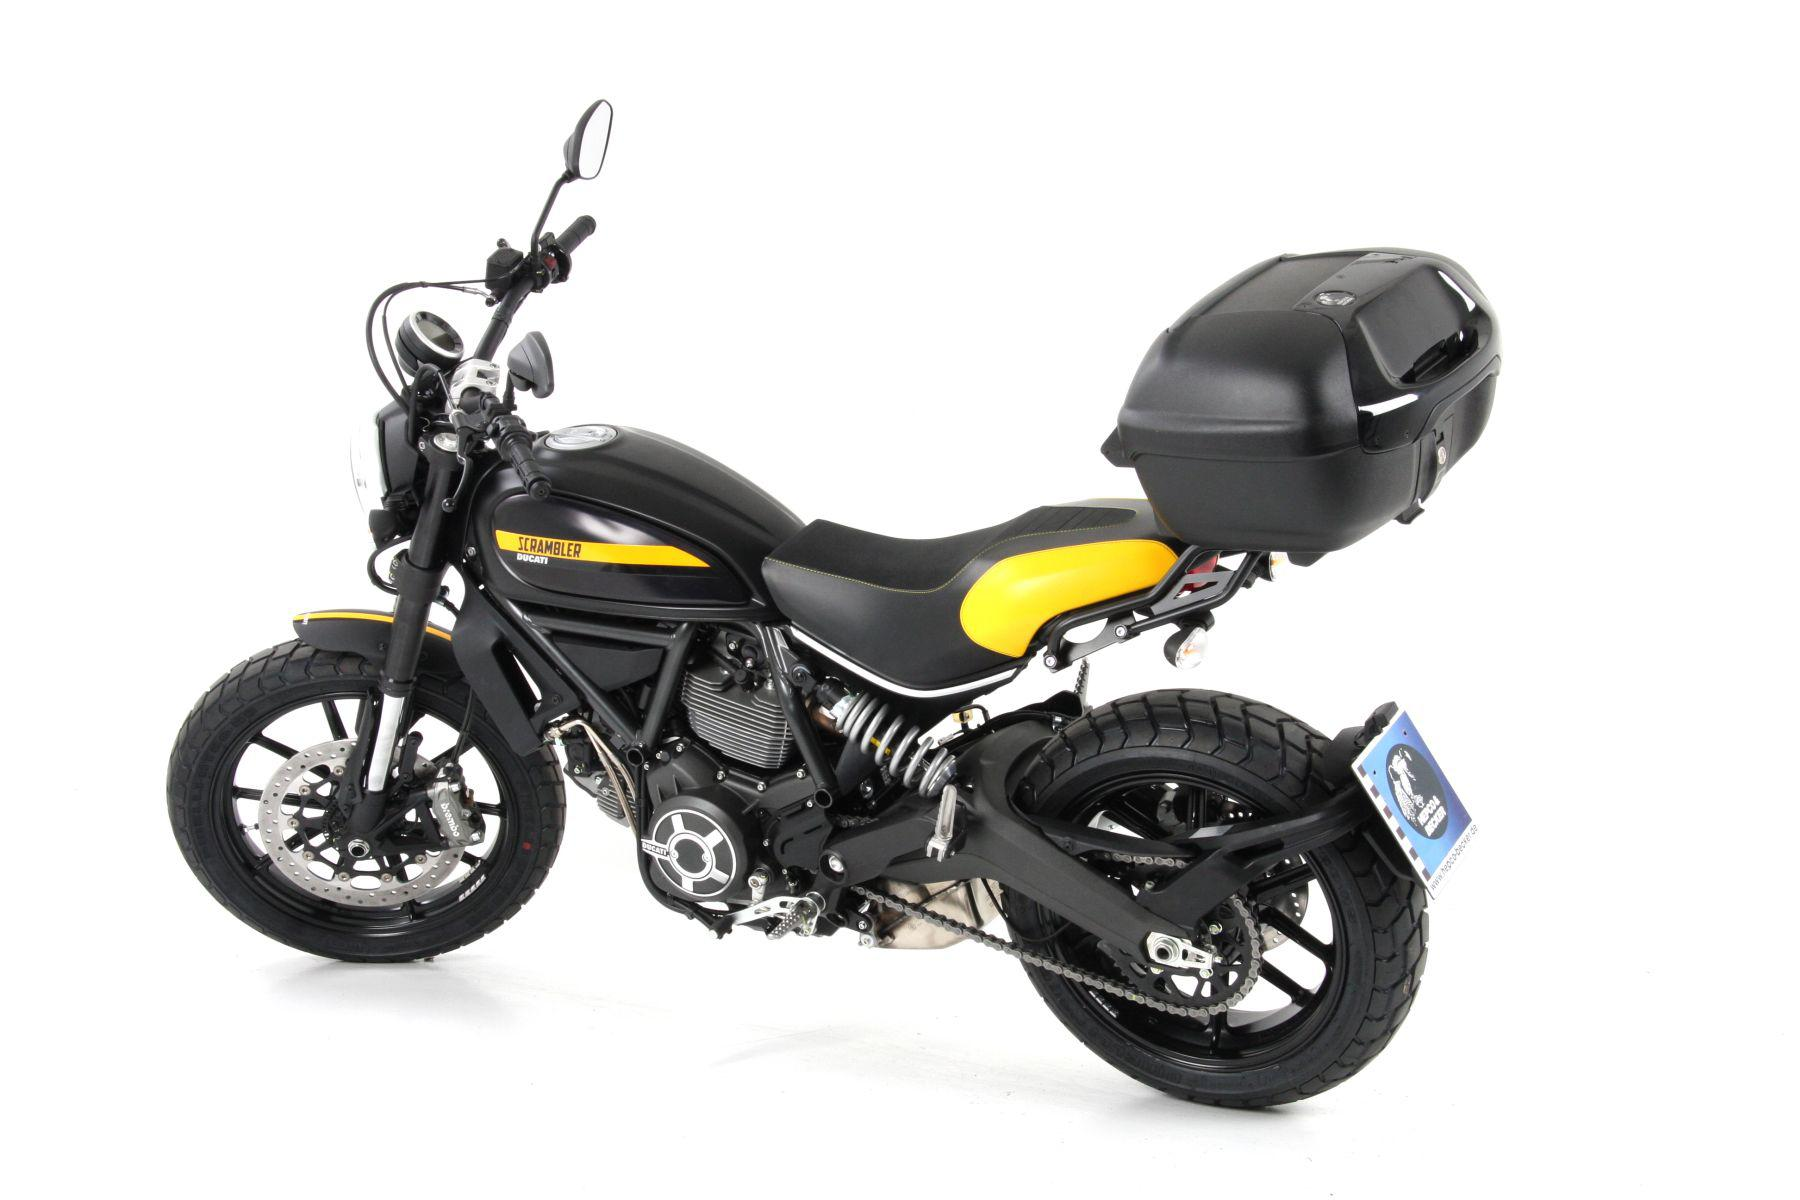 ducati scrambler zubeh r von hepco becker motorrad fotos. Black Bedroom Furniture Sets. Home Design Ideas